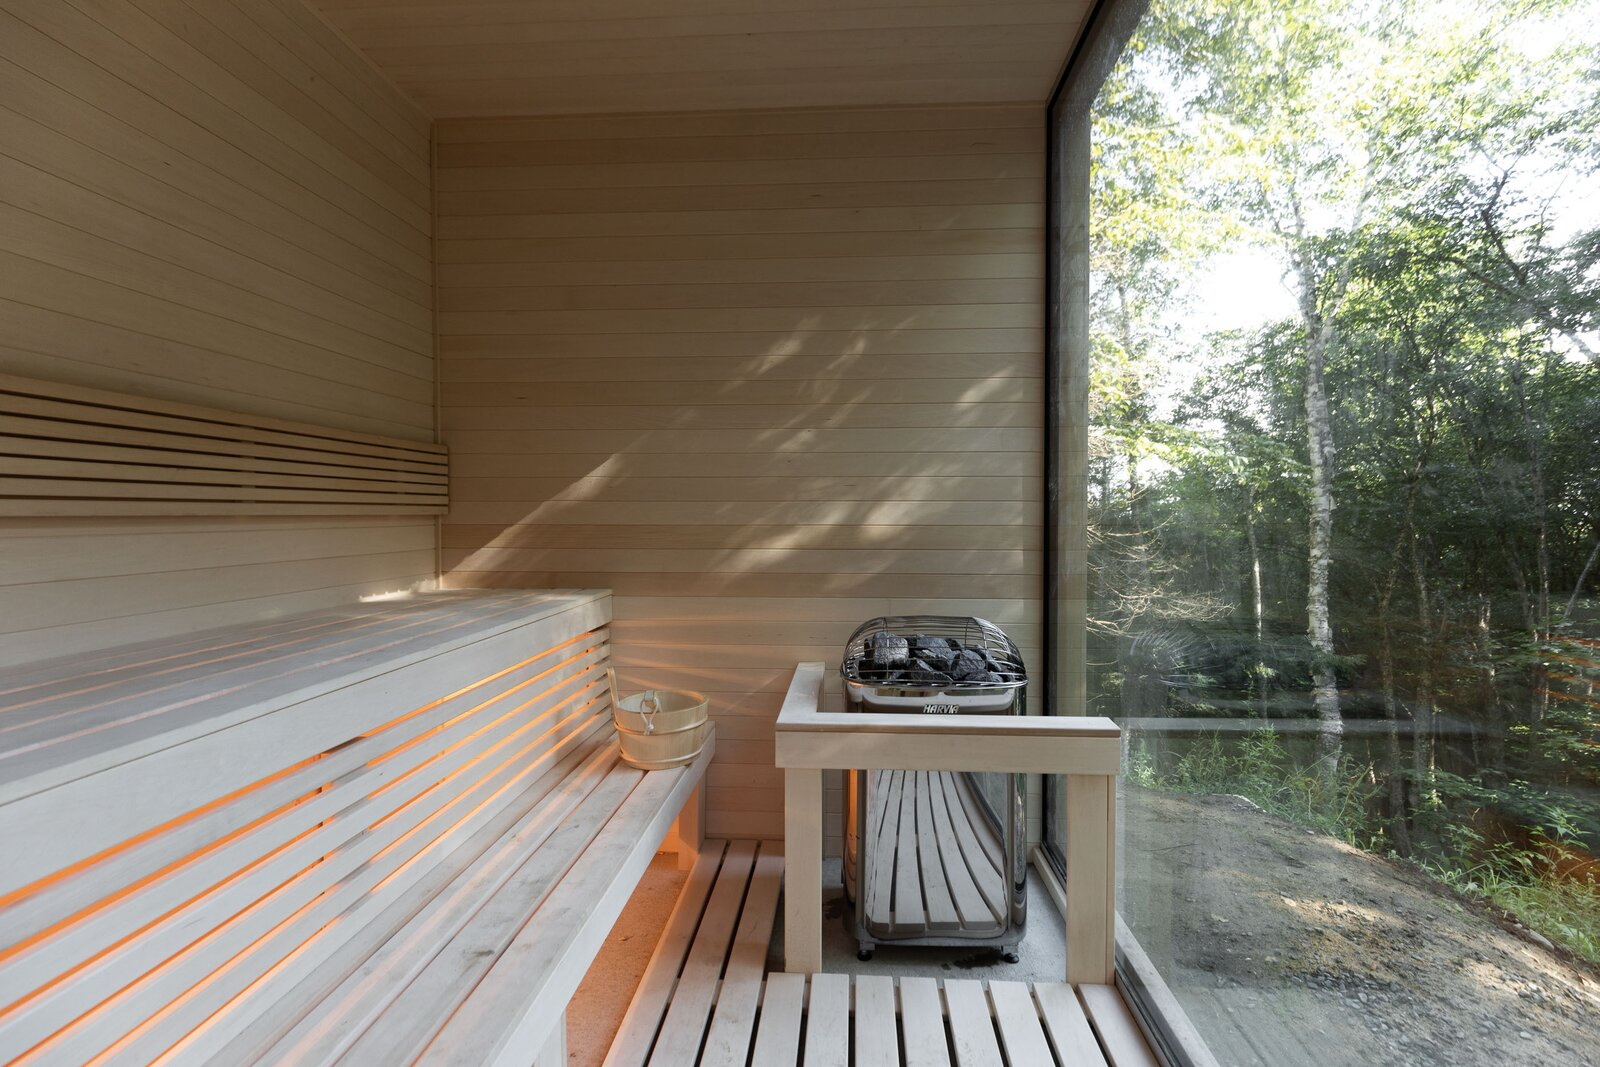 Hinterhouse sauna